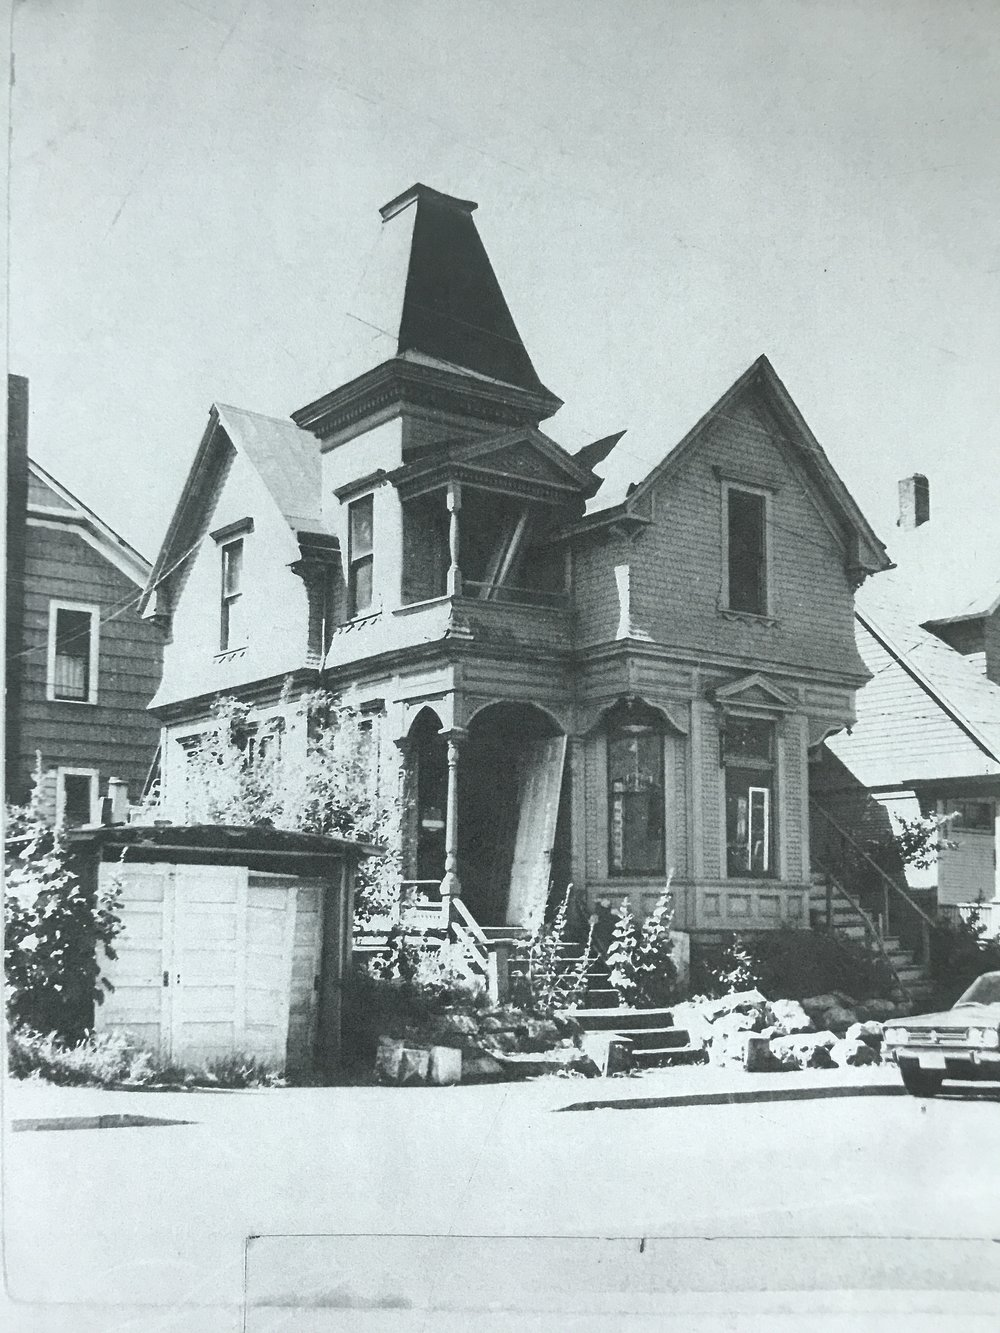 J.C. Havely House under restoration by Ben & Jerry in the 1970s.